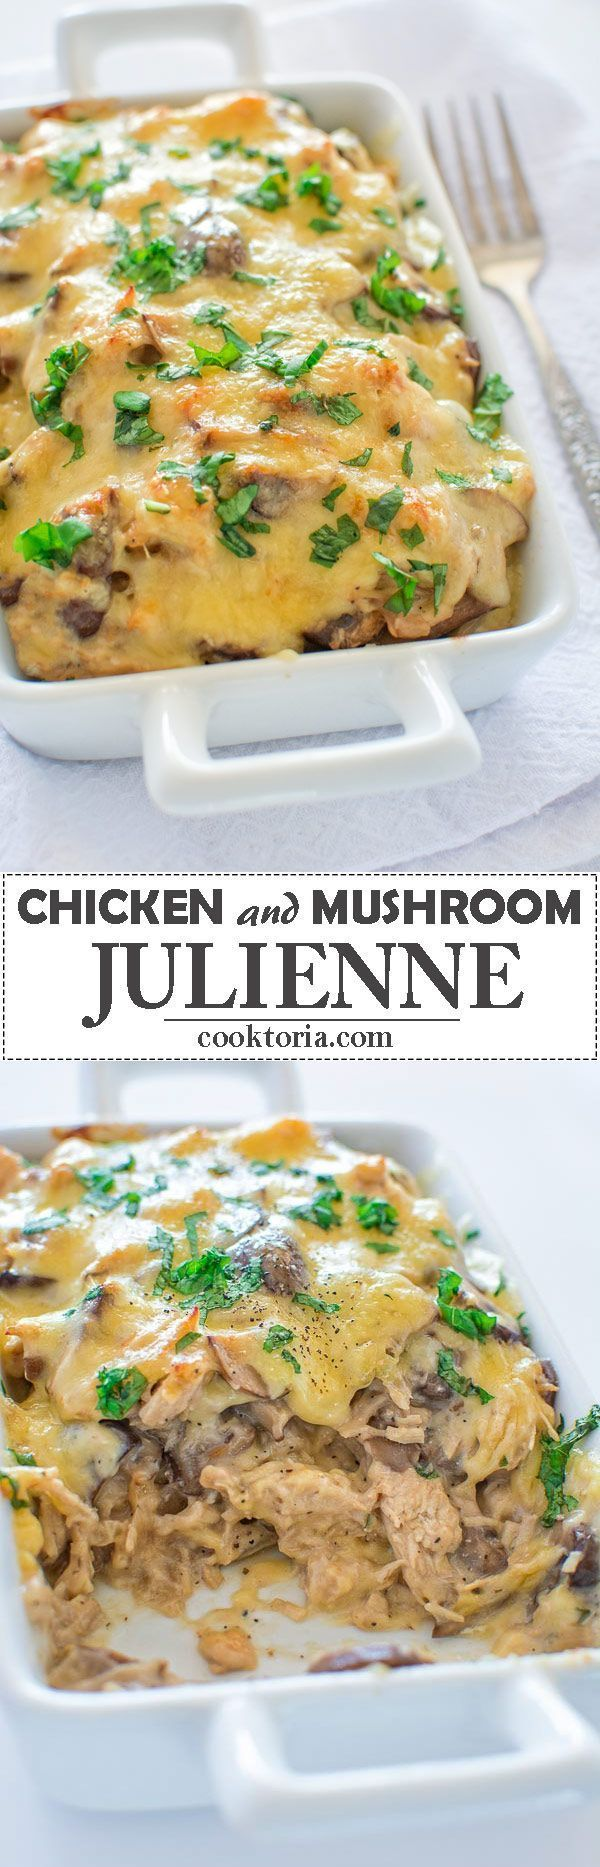 Succulent mushrooms and tender chicken cooked to perfection in creamy sauce and topped with melted cheese. This Chicken Mushroom Julienne is to die for!❤ http://COOKTORIA.COM